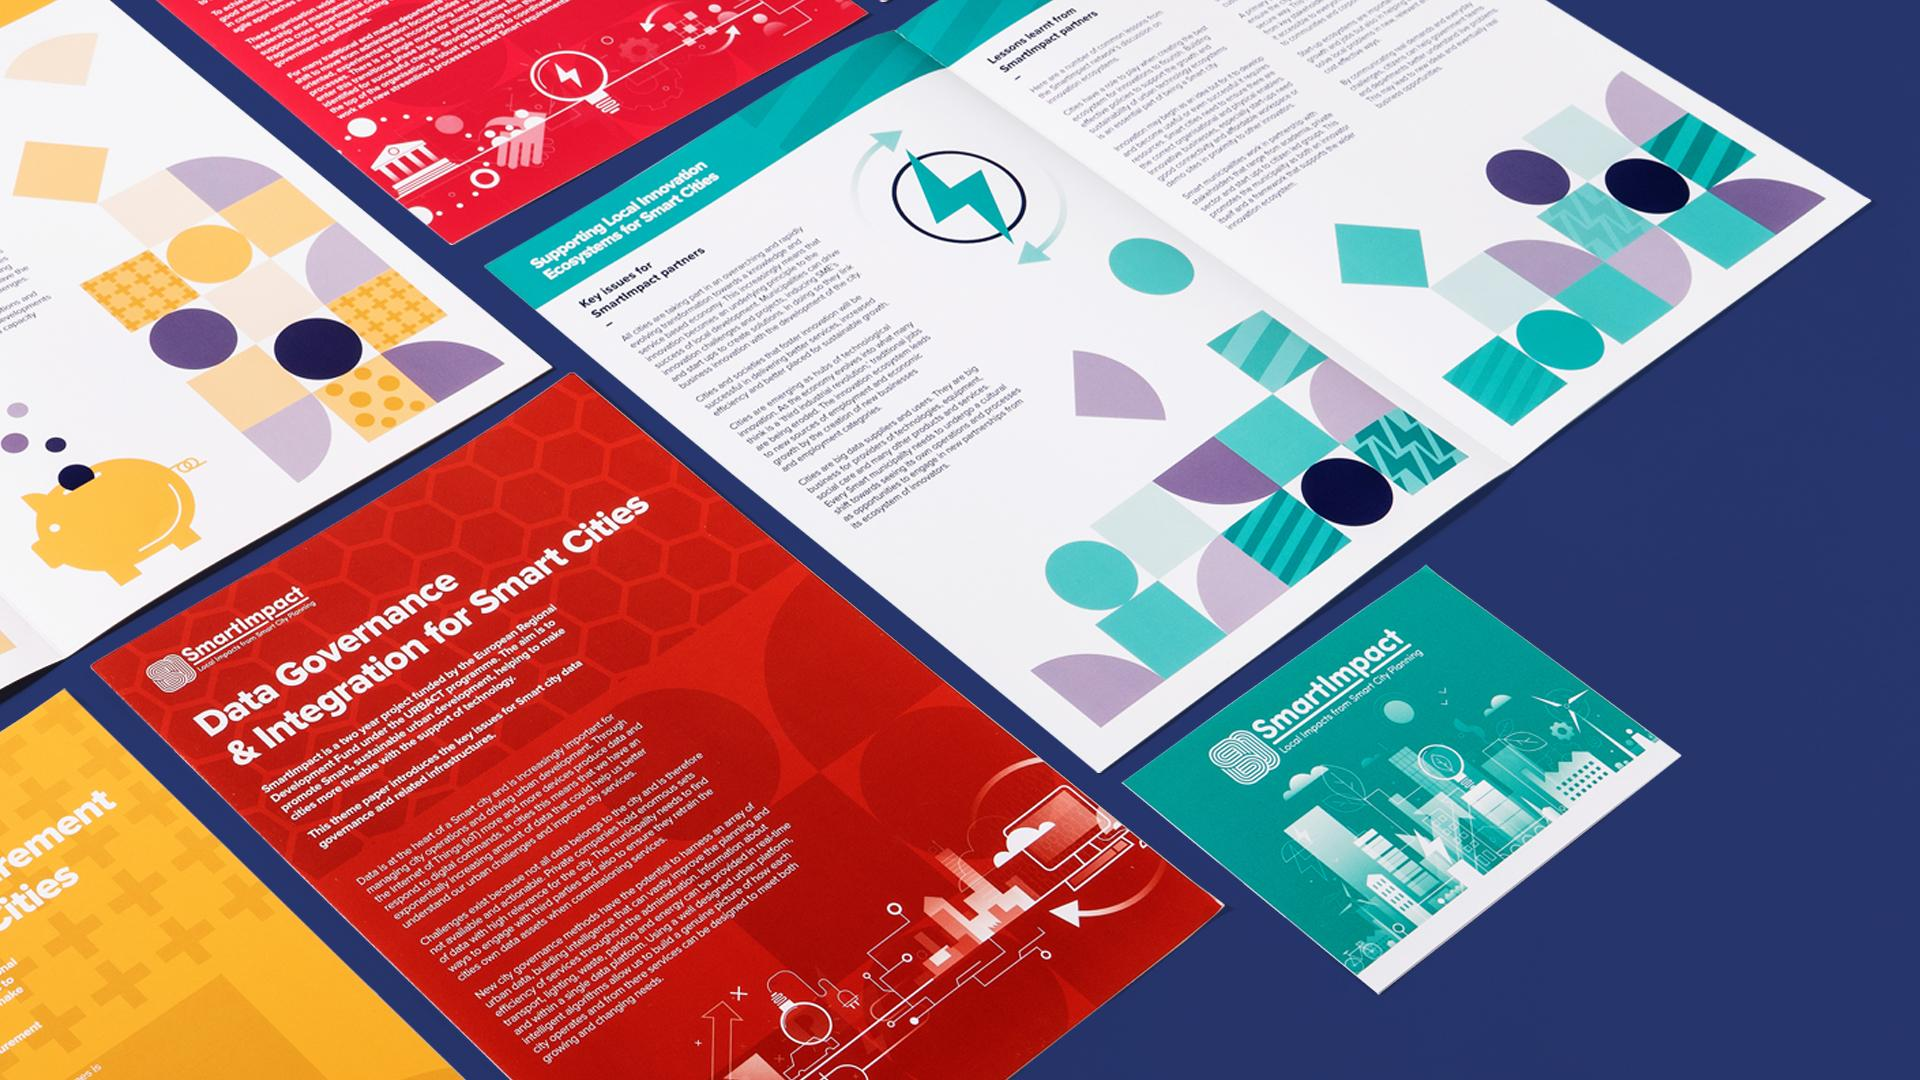 SmartImpact branded print materials for the event